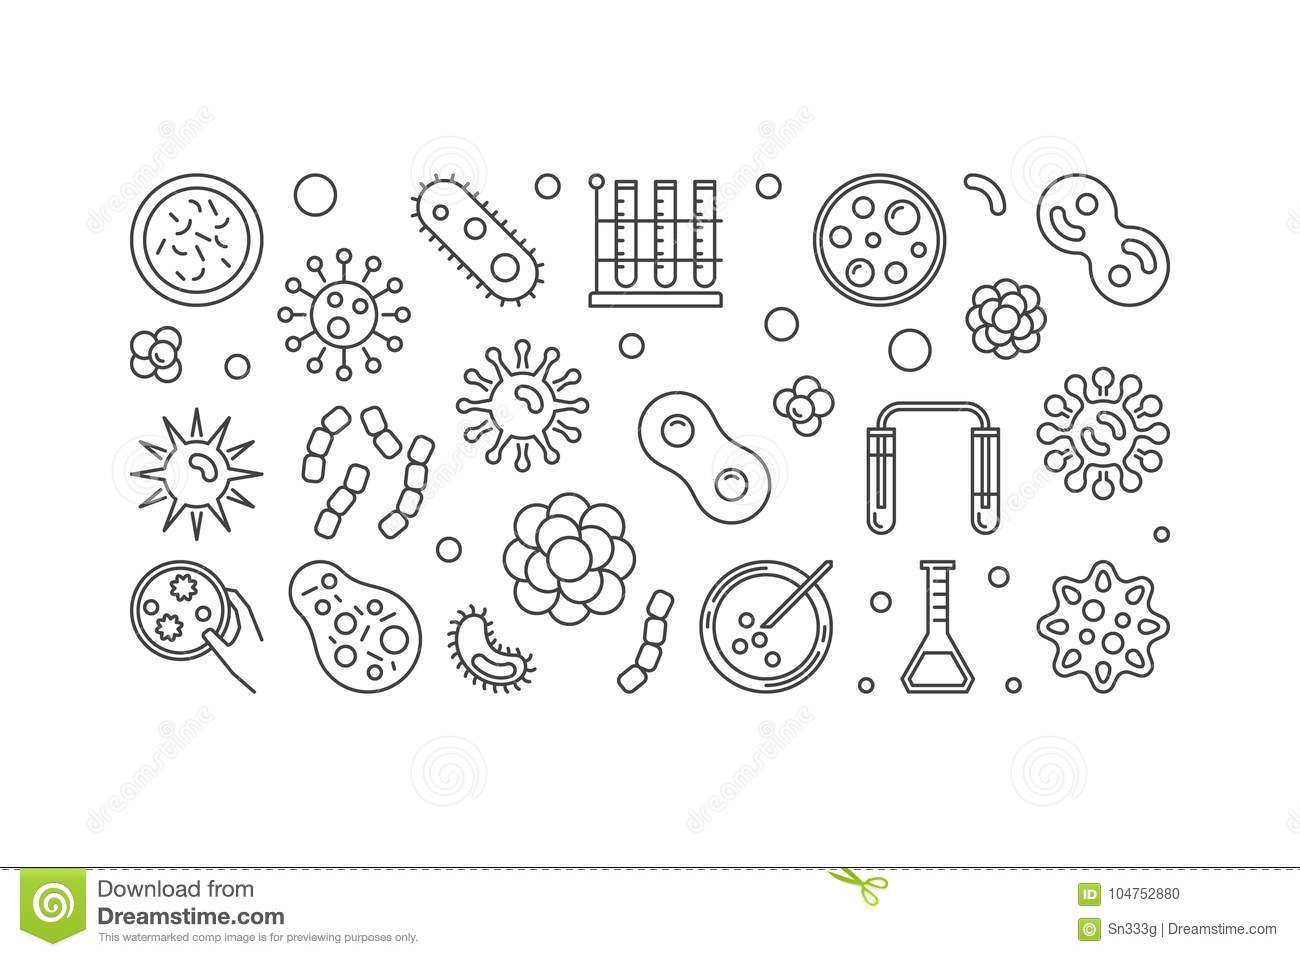 Simple Virus Diagram Cartoon Vector